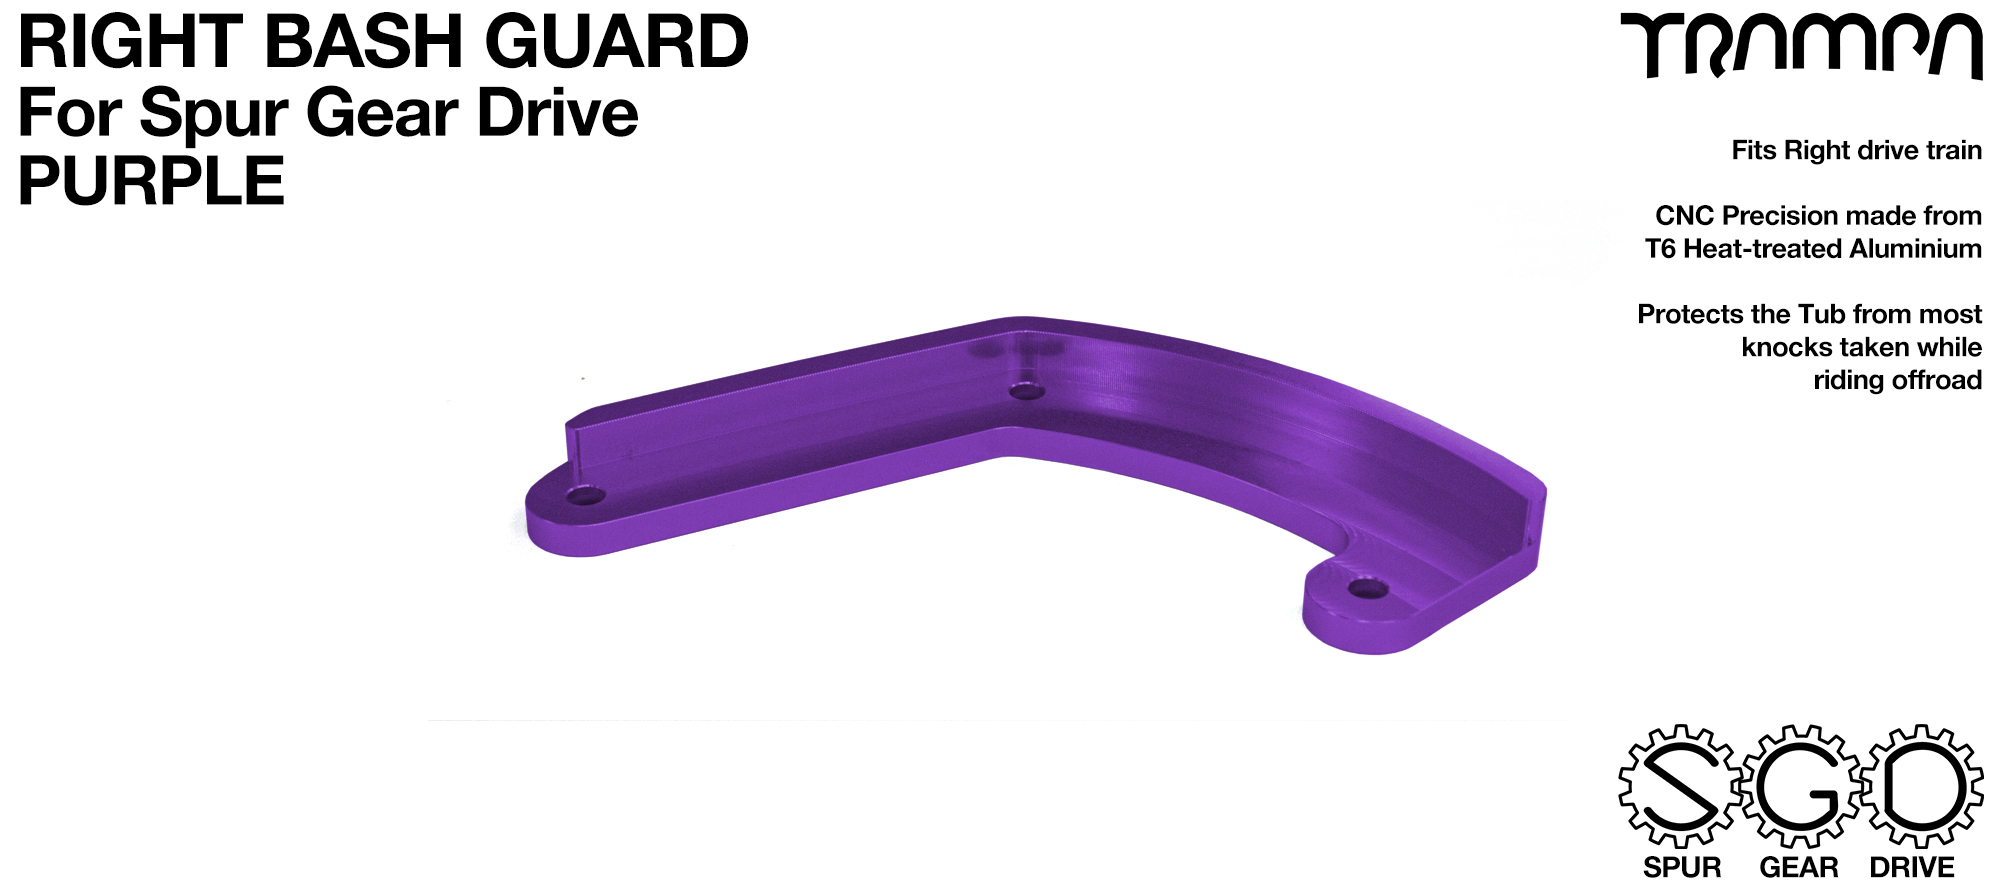 MkII Spur Gear Drive Bash Guard - RIGHT Side - PURPLE